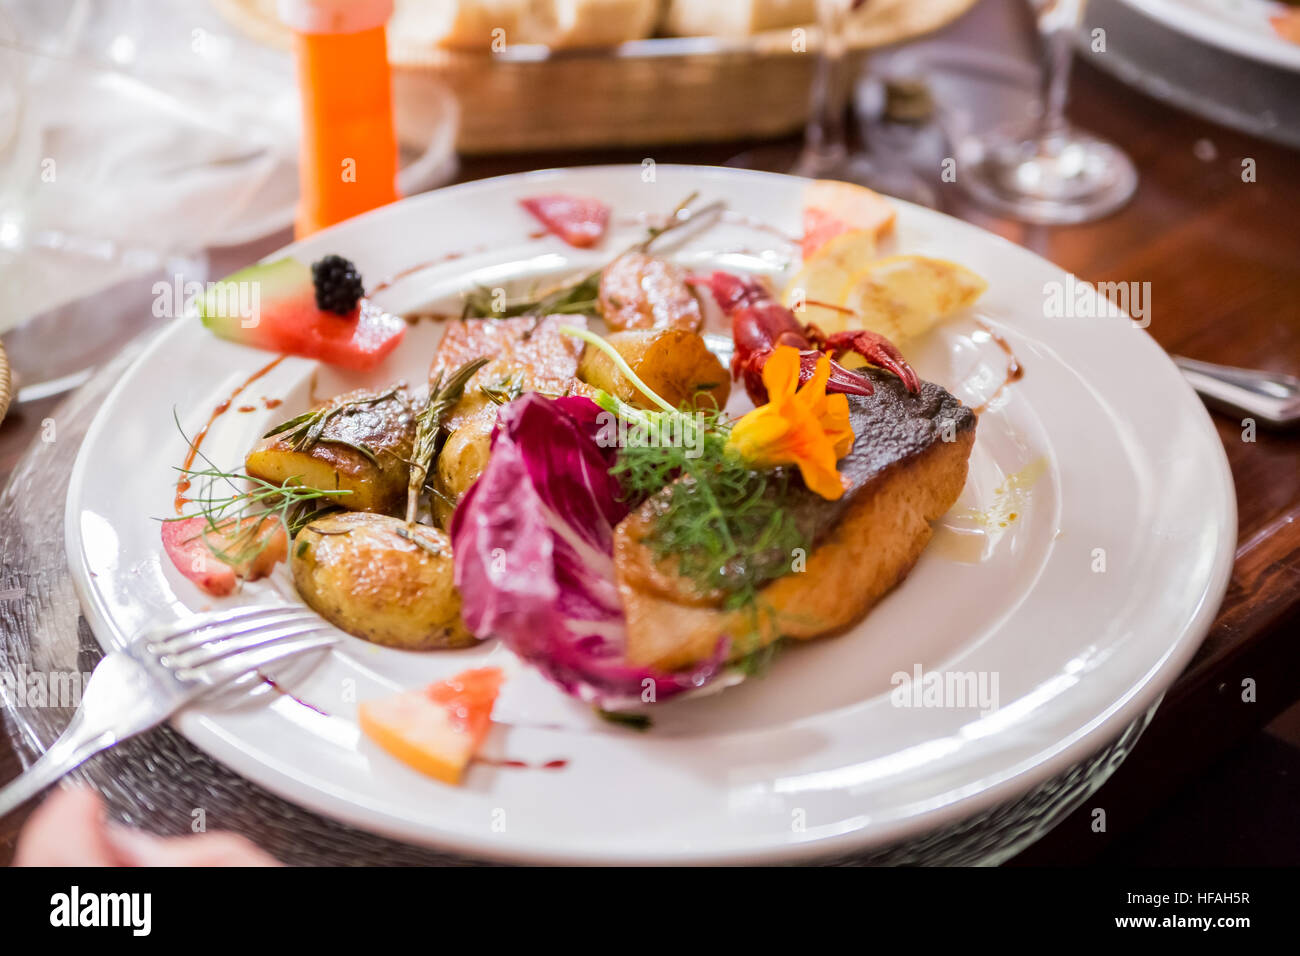 lachs meal - Stock Image